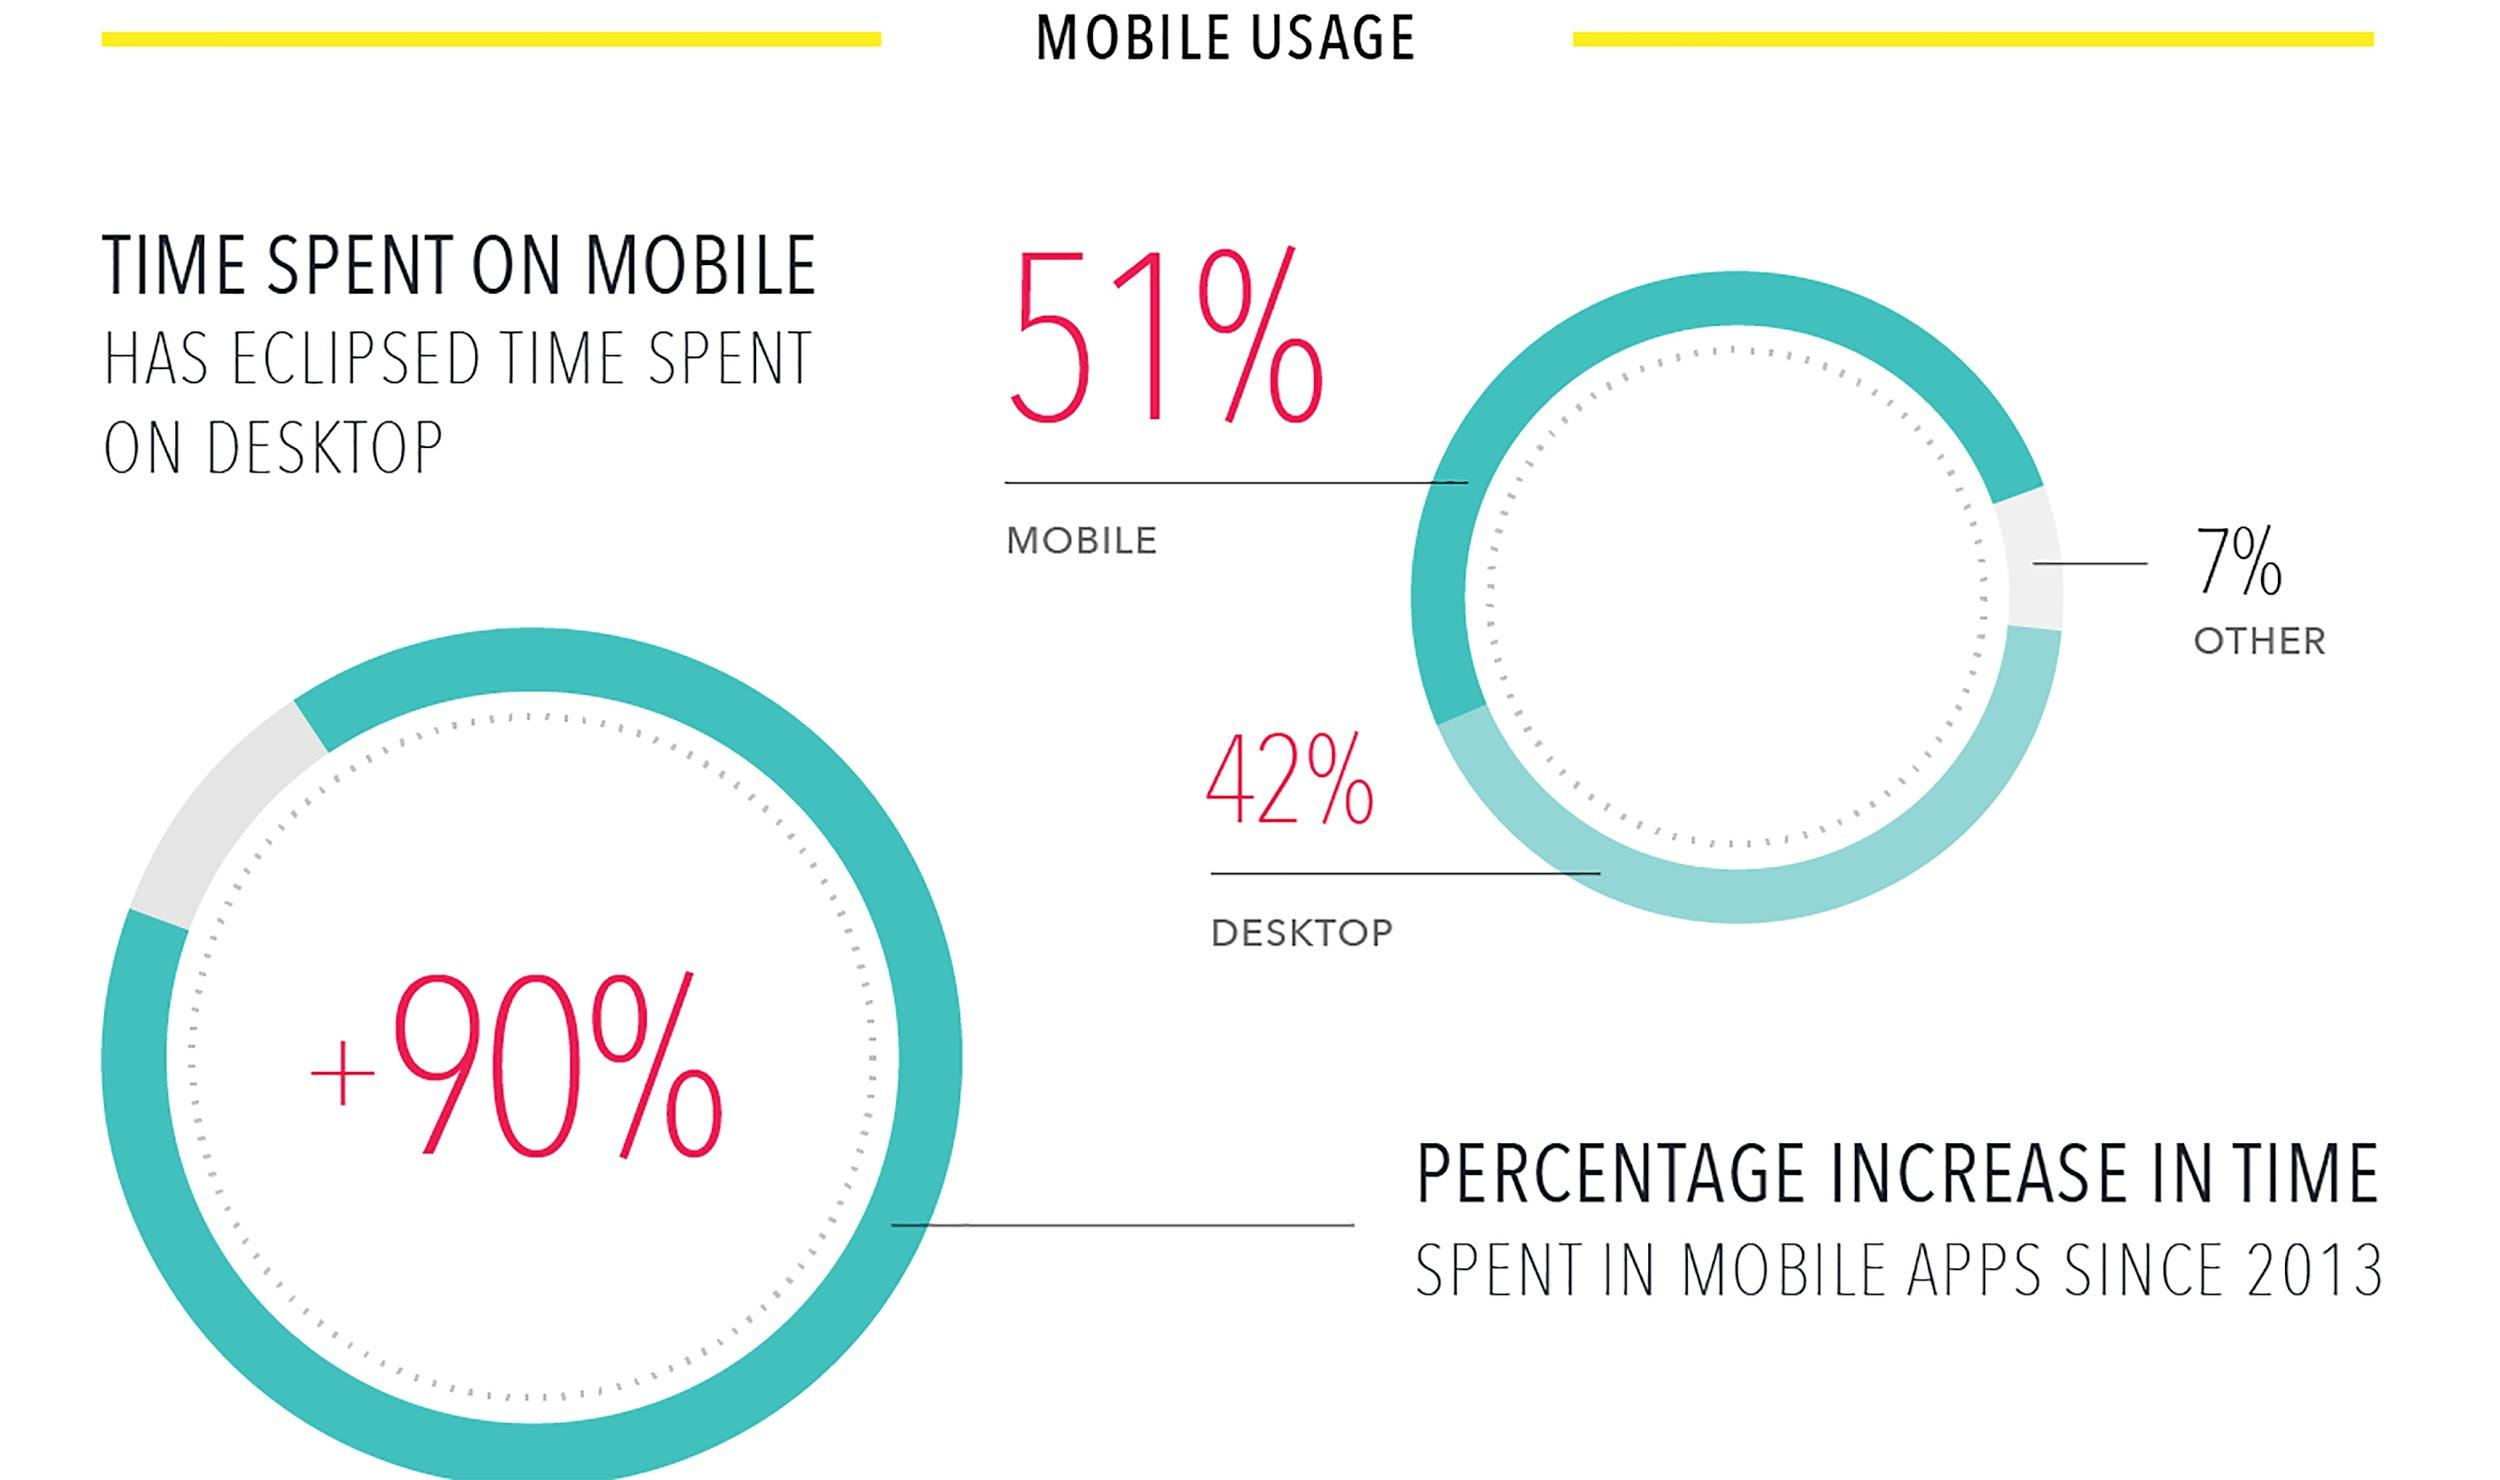 time spent on mobile devices in comparison to desktop